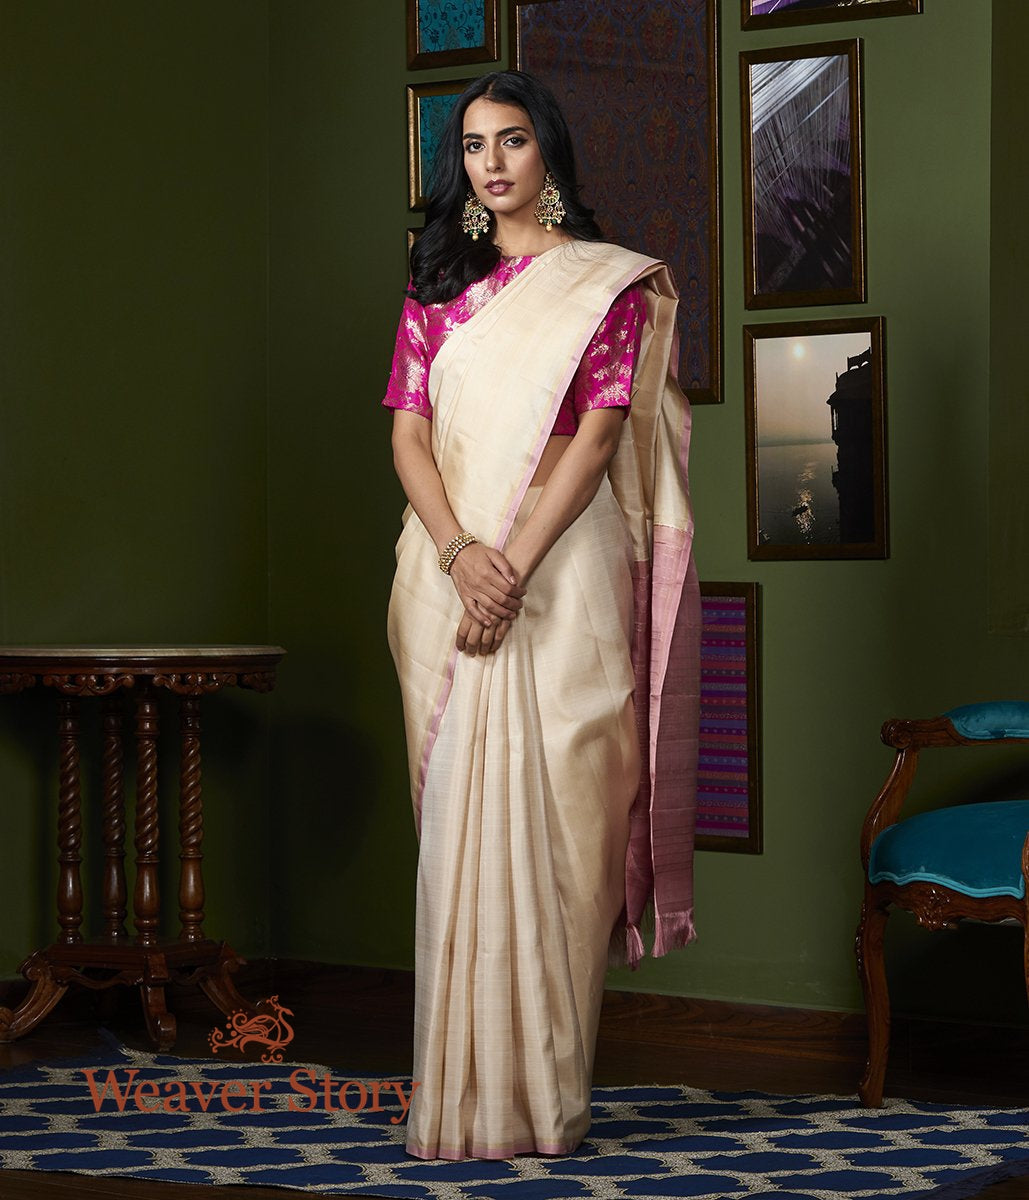 Handwoven Beige Kanjivaram Silk Saree with Small Pink Border